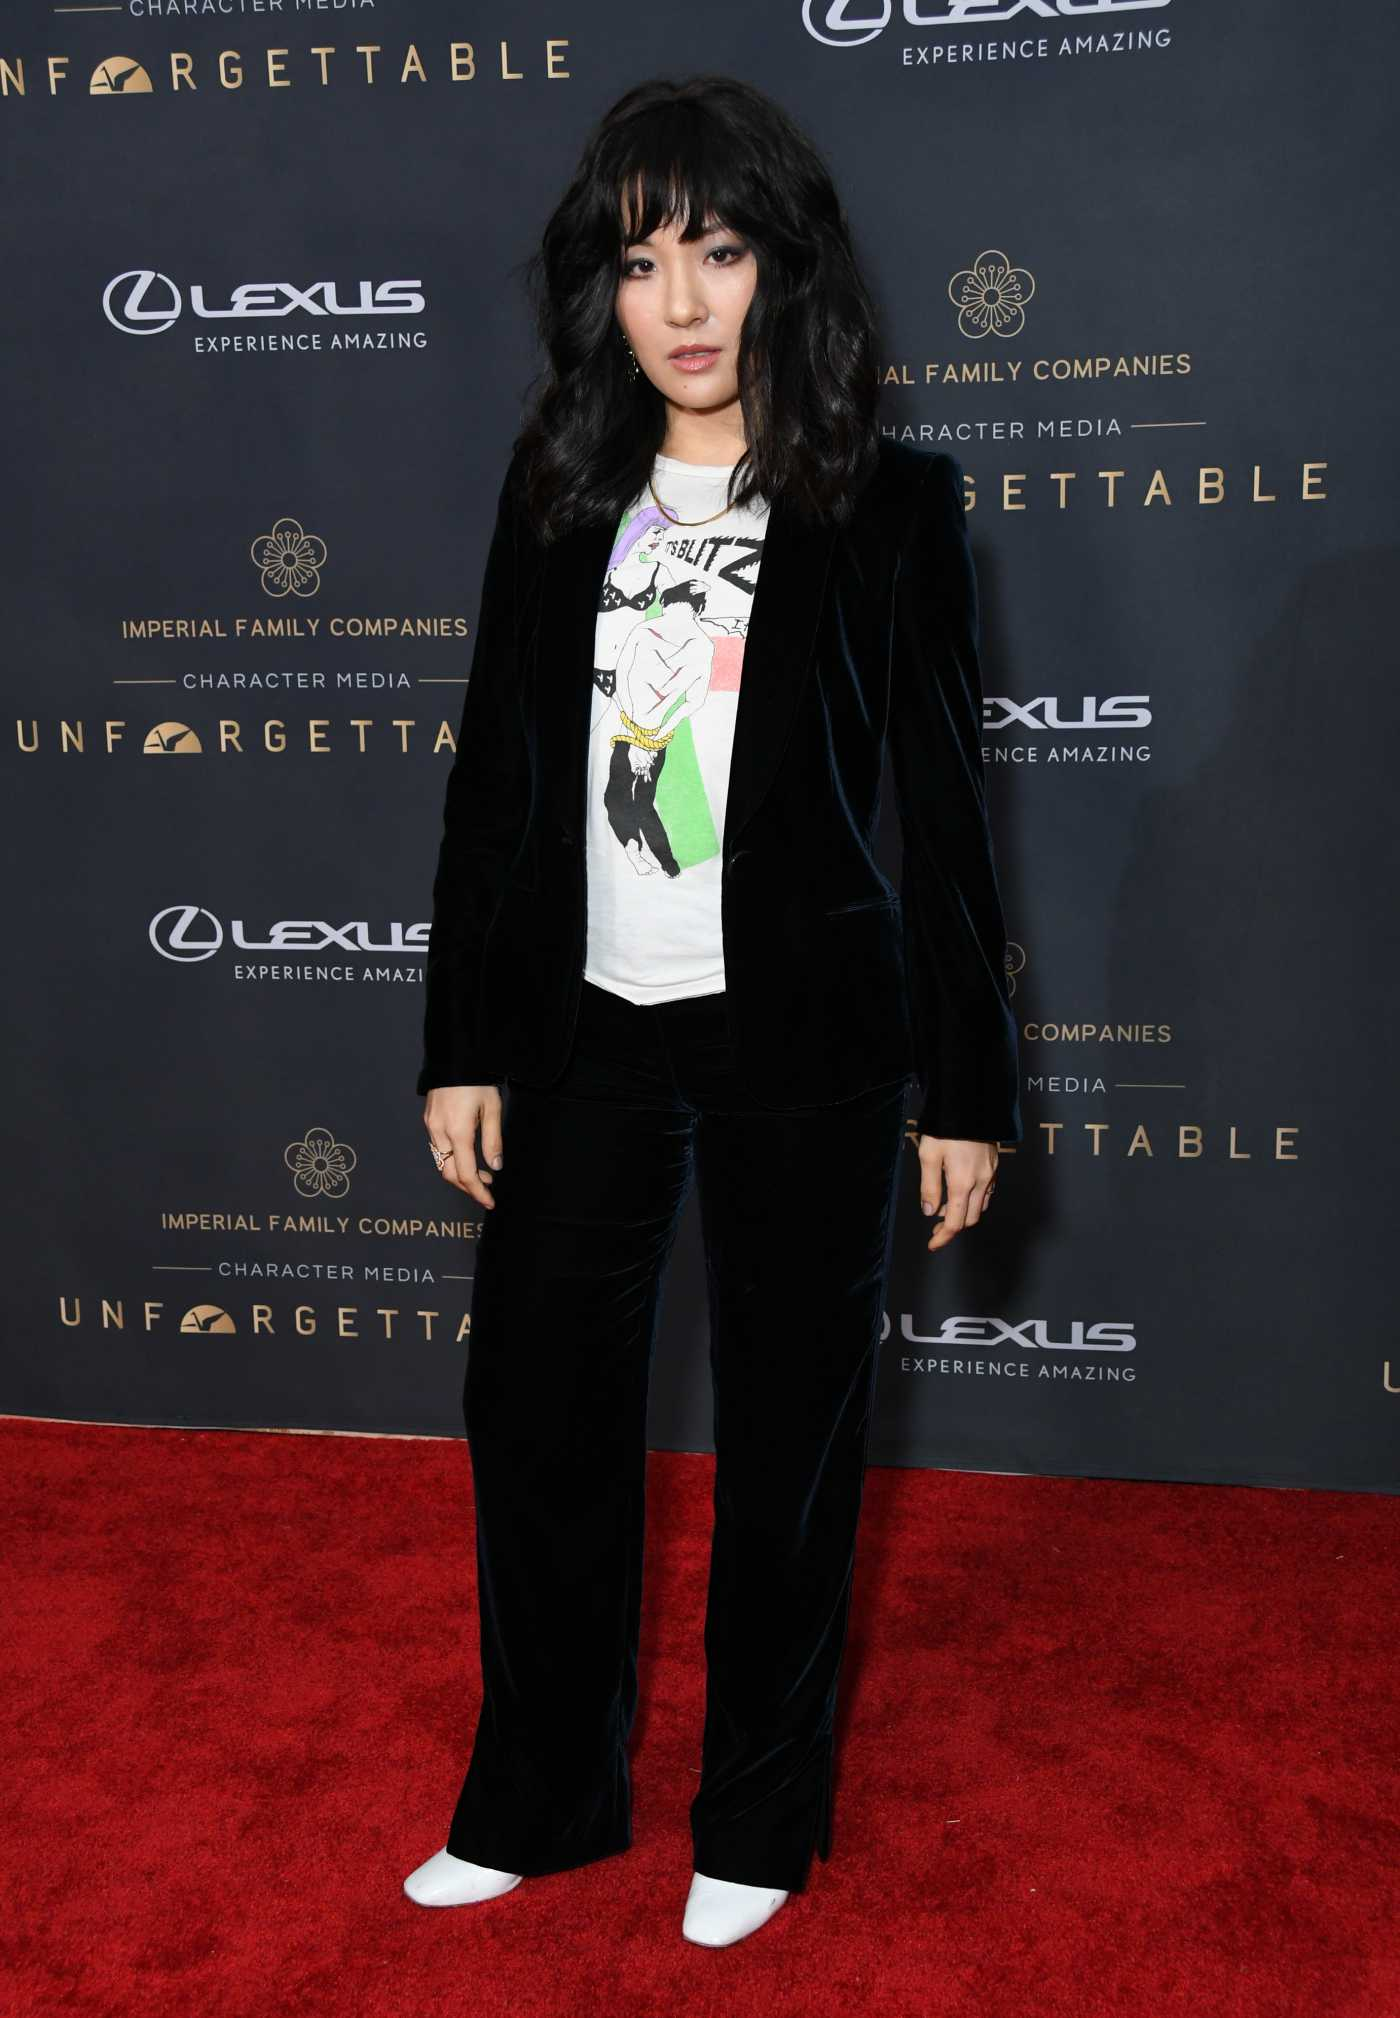 Constance Wu Attends the 18th Annual Unforgettable Gala in Beverly Hills 12/14/2019